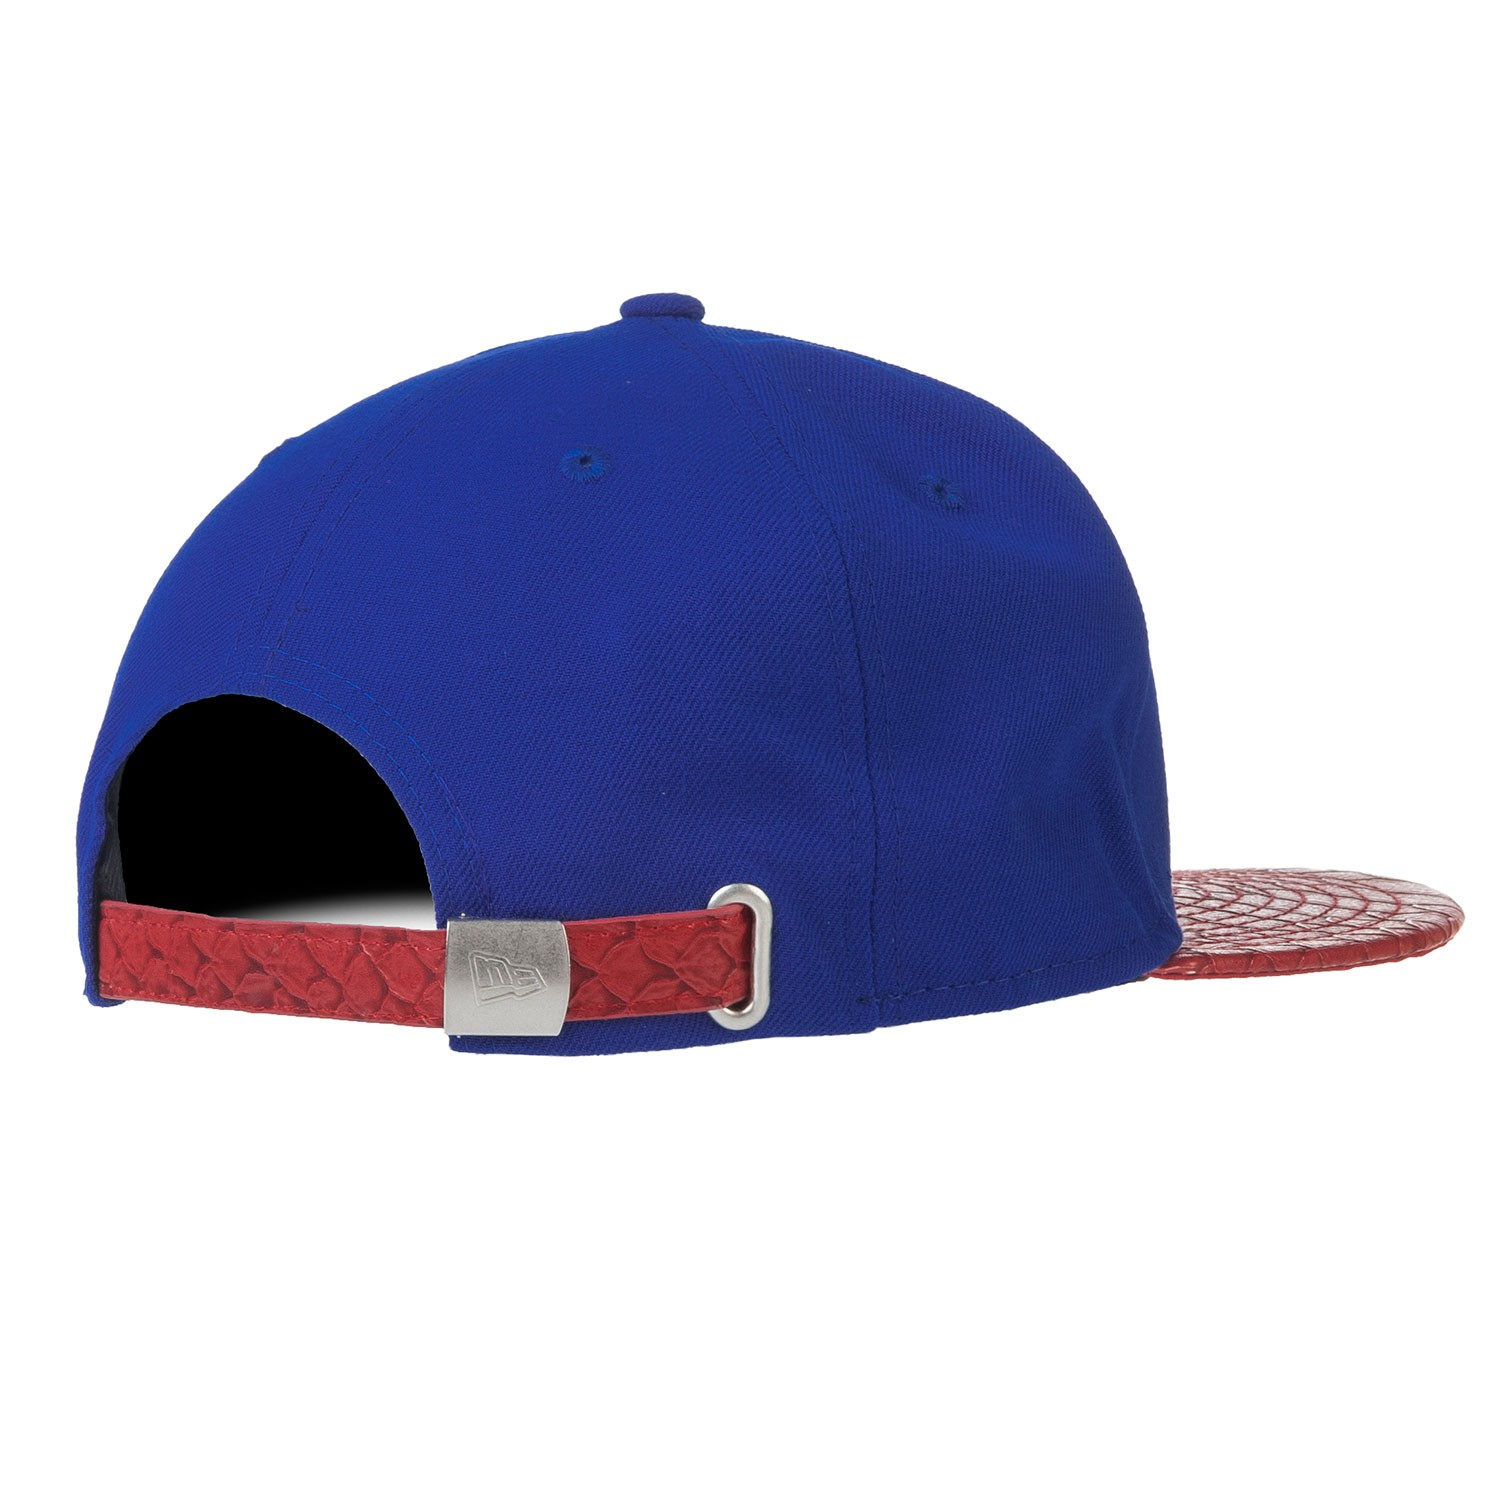 New Era Superman 9Fifty Reptvize